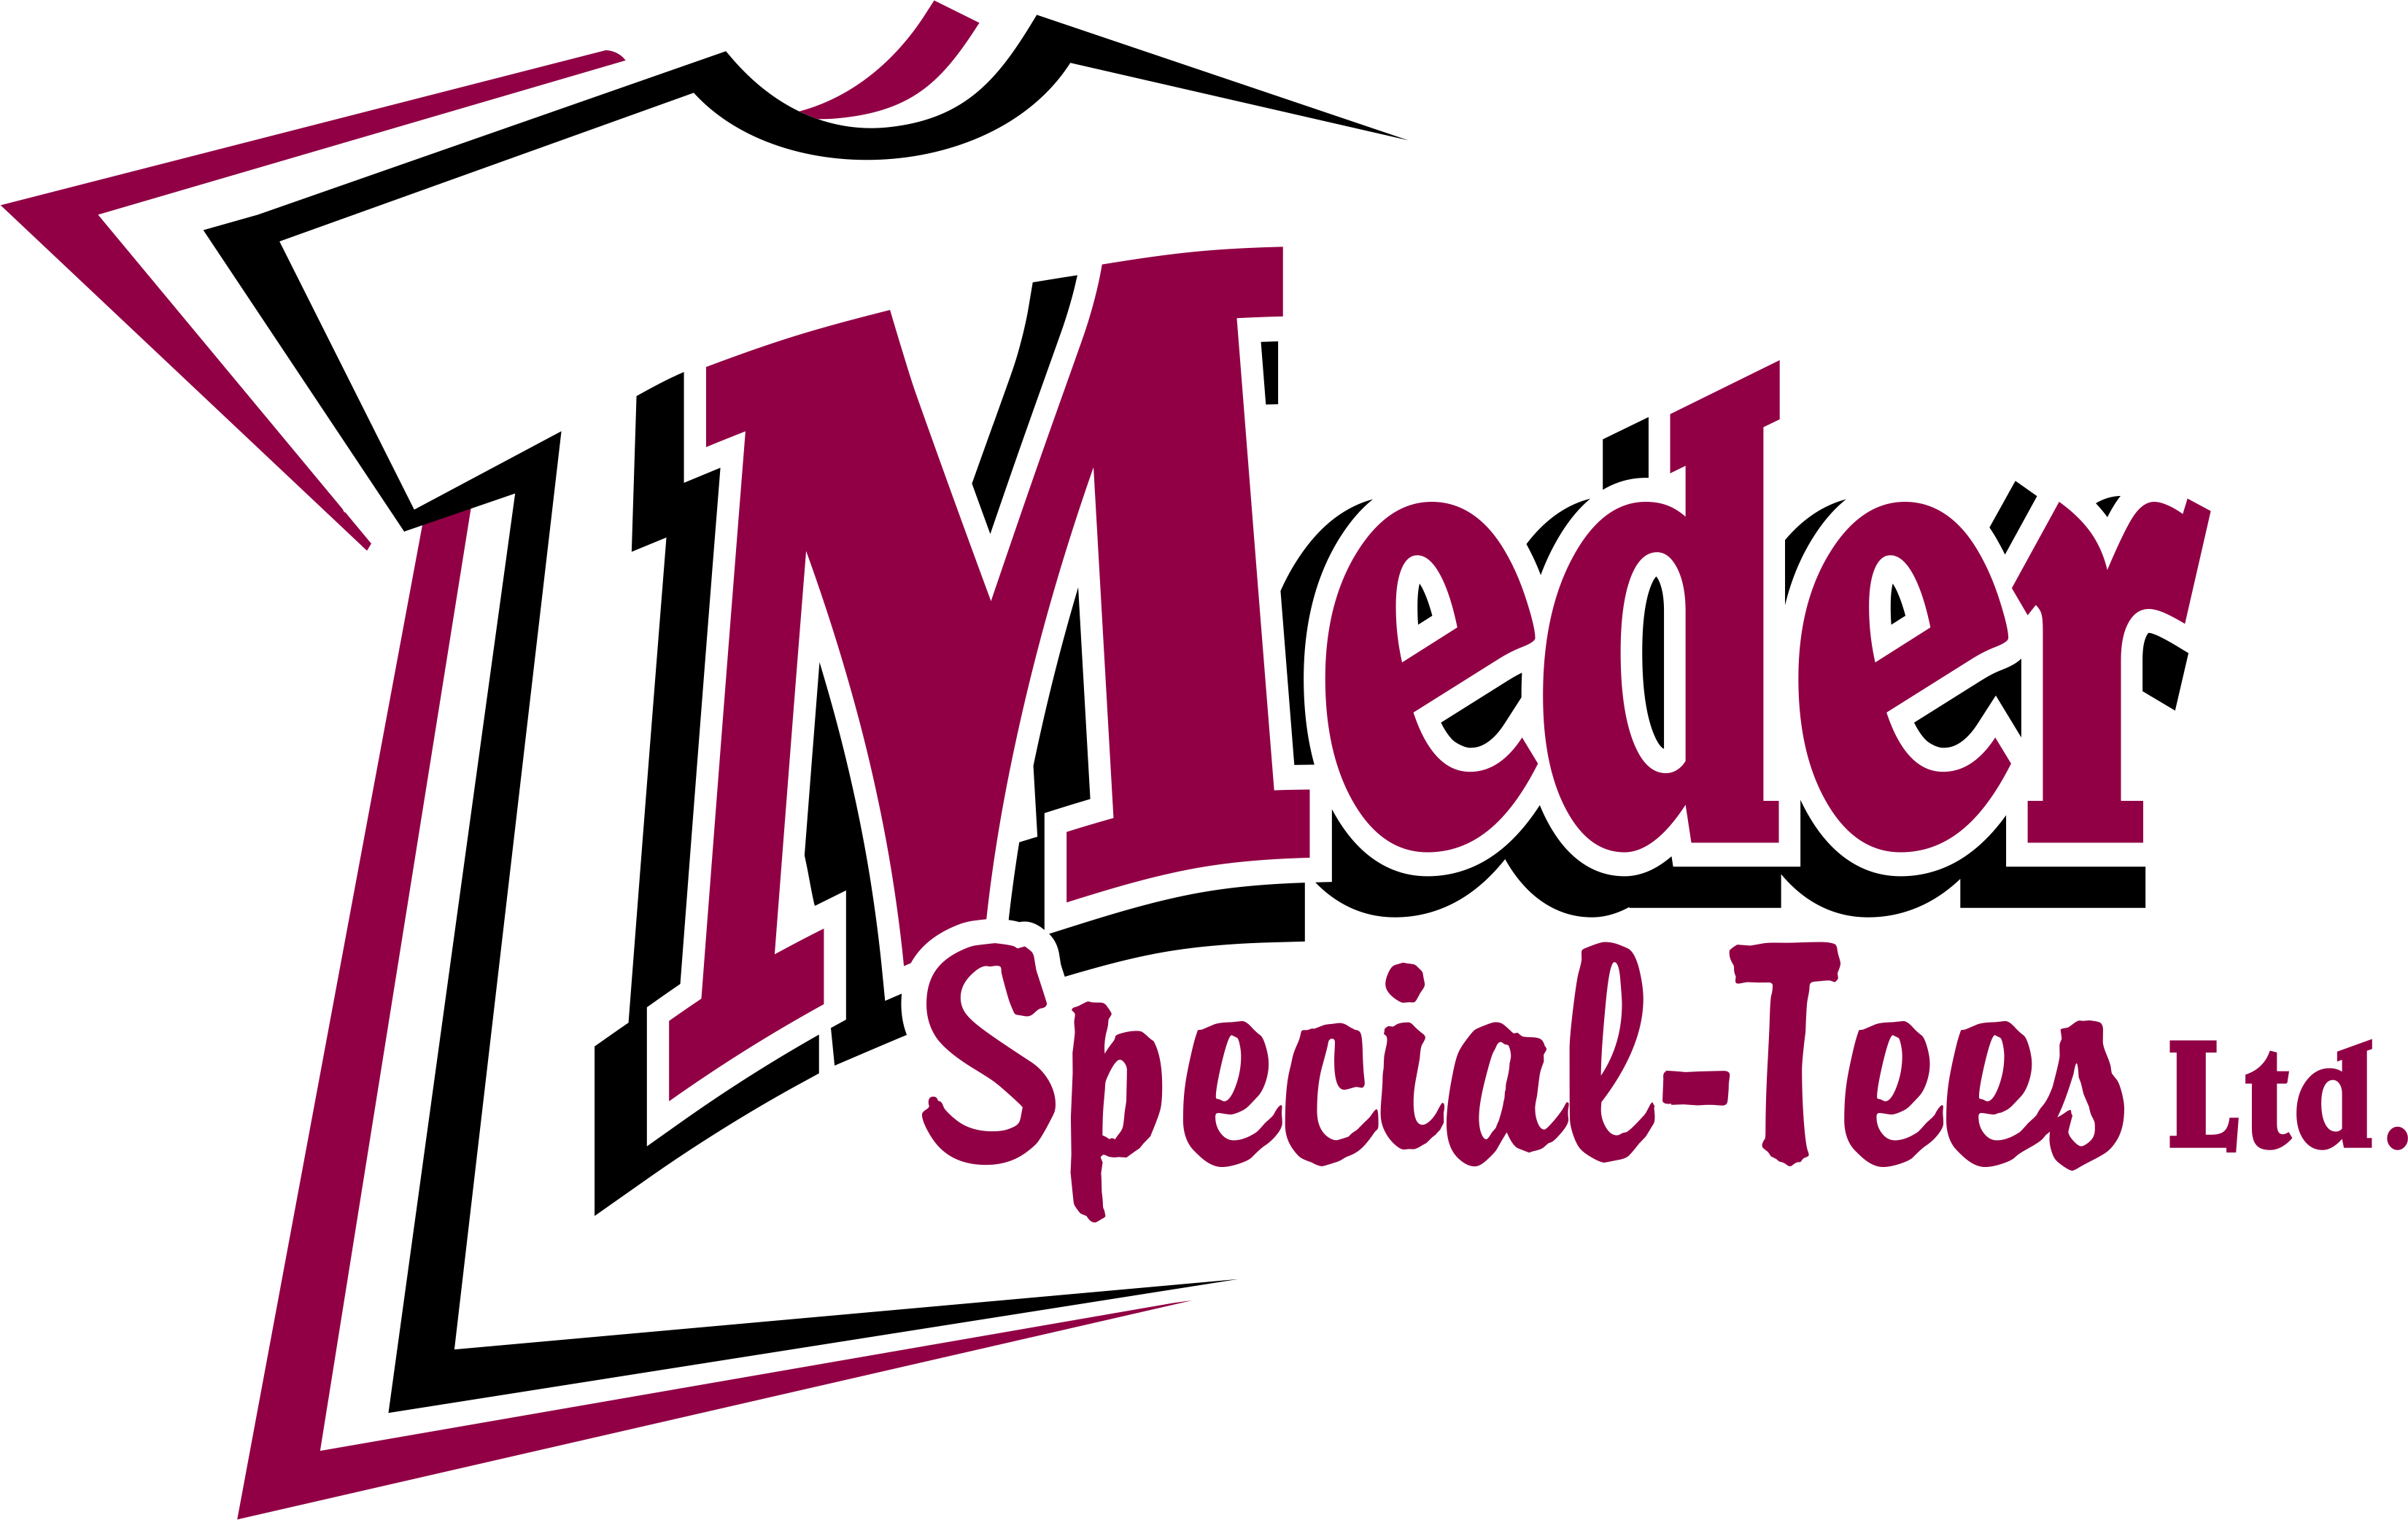 Meder Special Tees - Cincinnati & Northern Kentucky